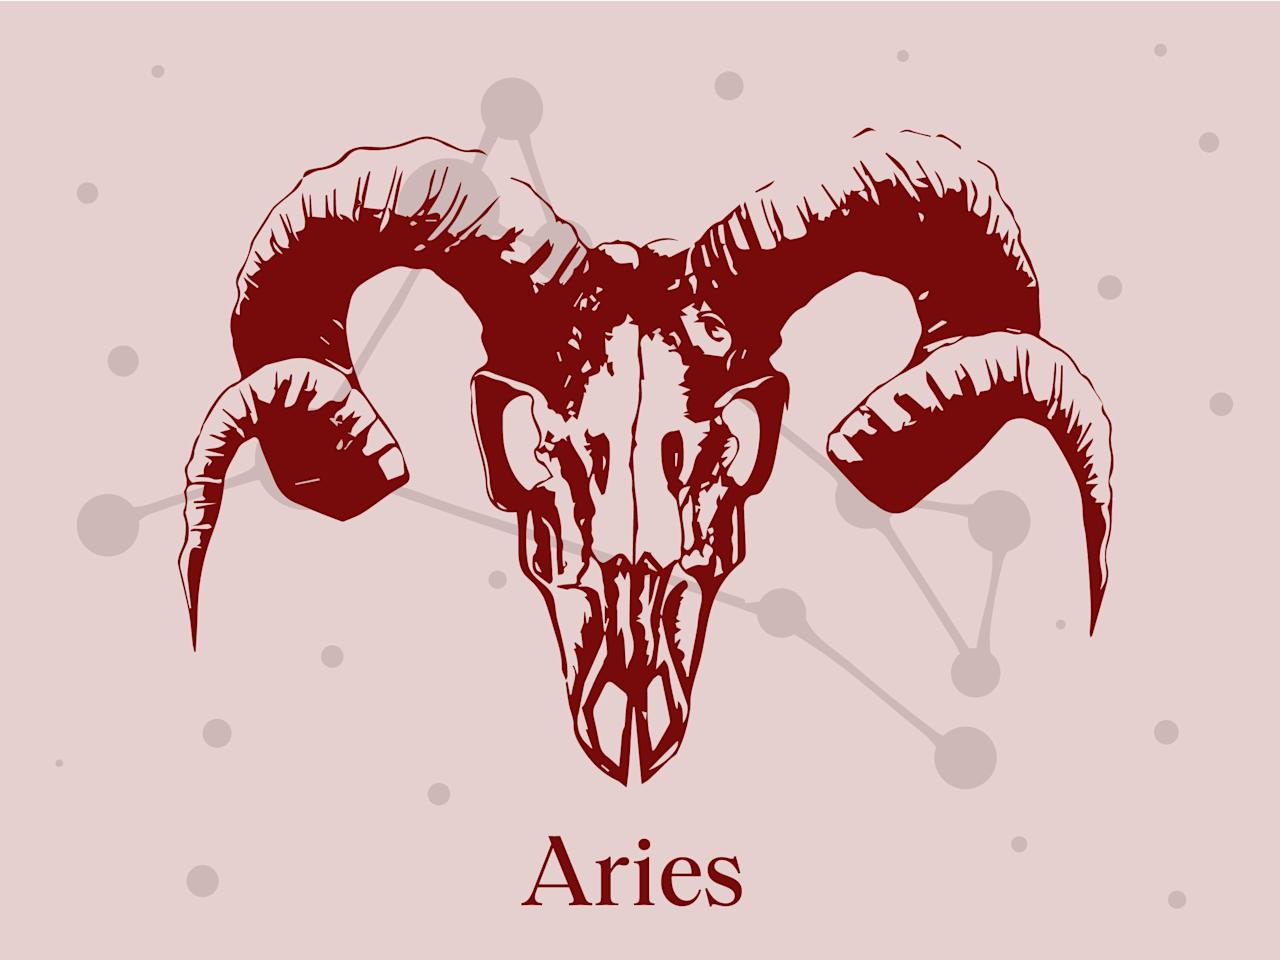 """""""Fire signs, in general, are the boldest and like their presence to be known, so forget the subtlety! Aries are more likely to go for a unisex scent that's strong and packs an immediate punch of interest. They don't mind taking up space and letting people know they're in town and doing their thing, so strong, smokey, warm scents match their enthusiasm for life."""""""